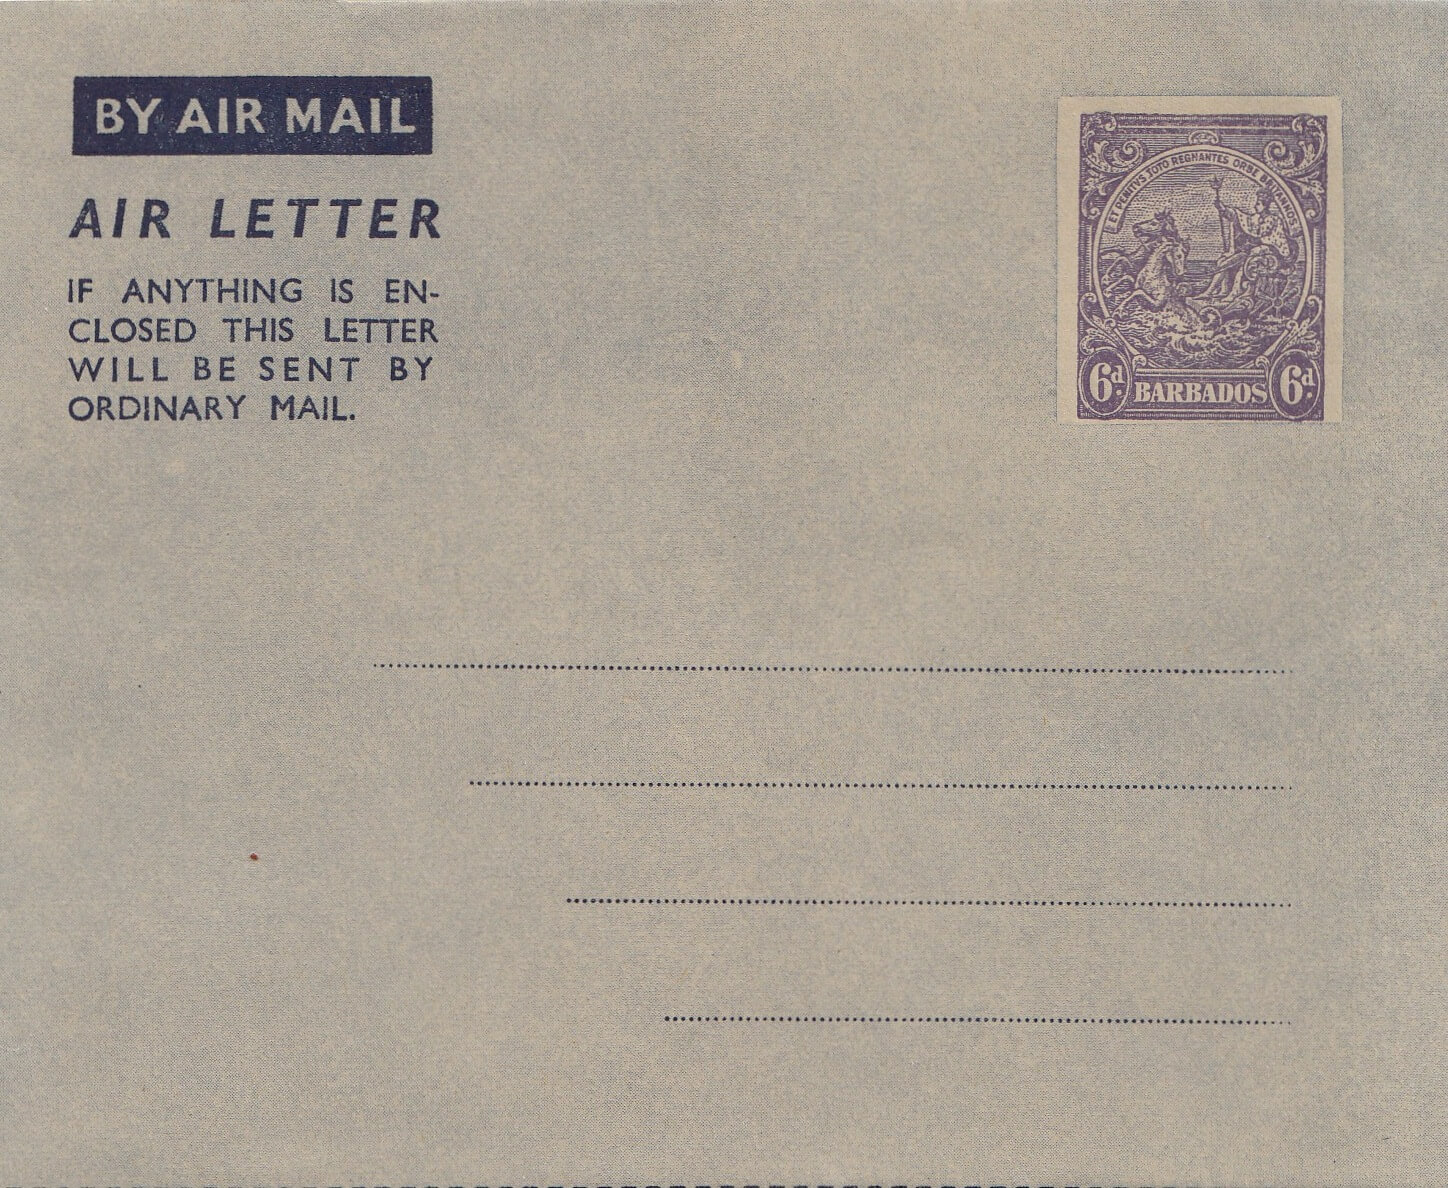 Barbados Air Letter form 1949